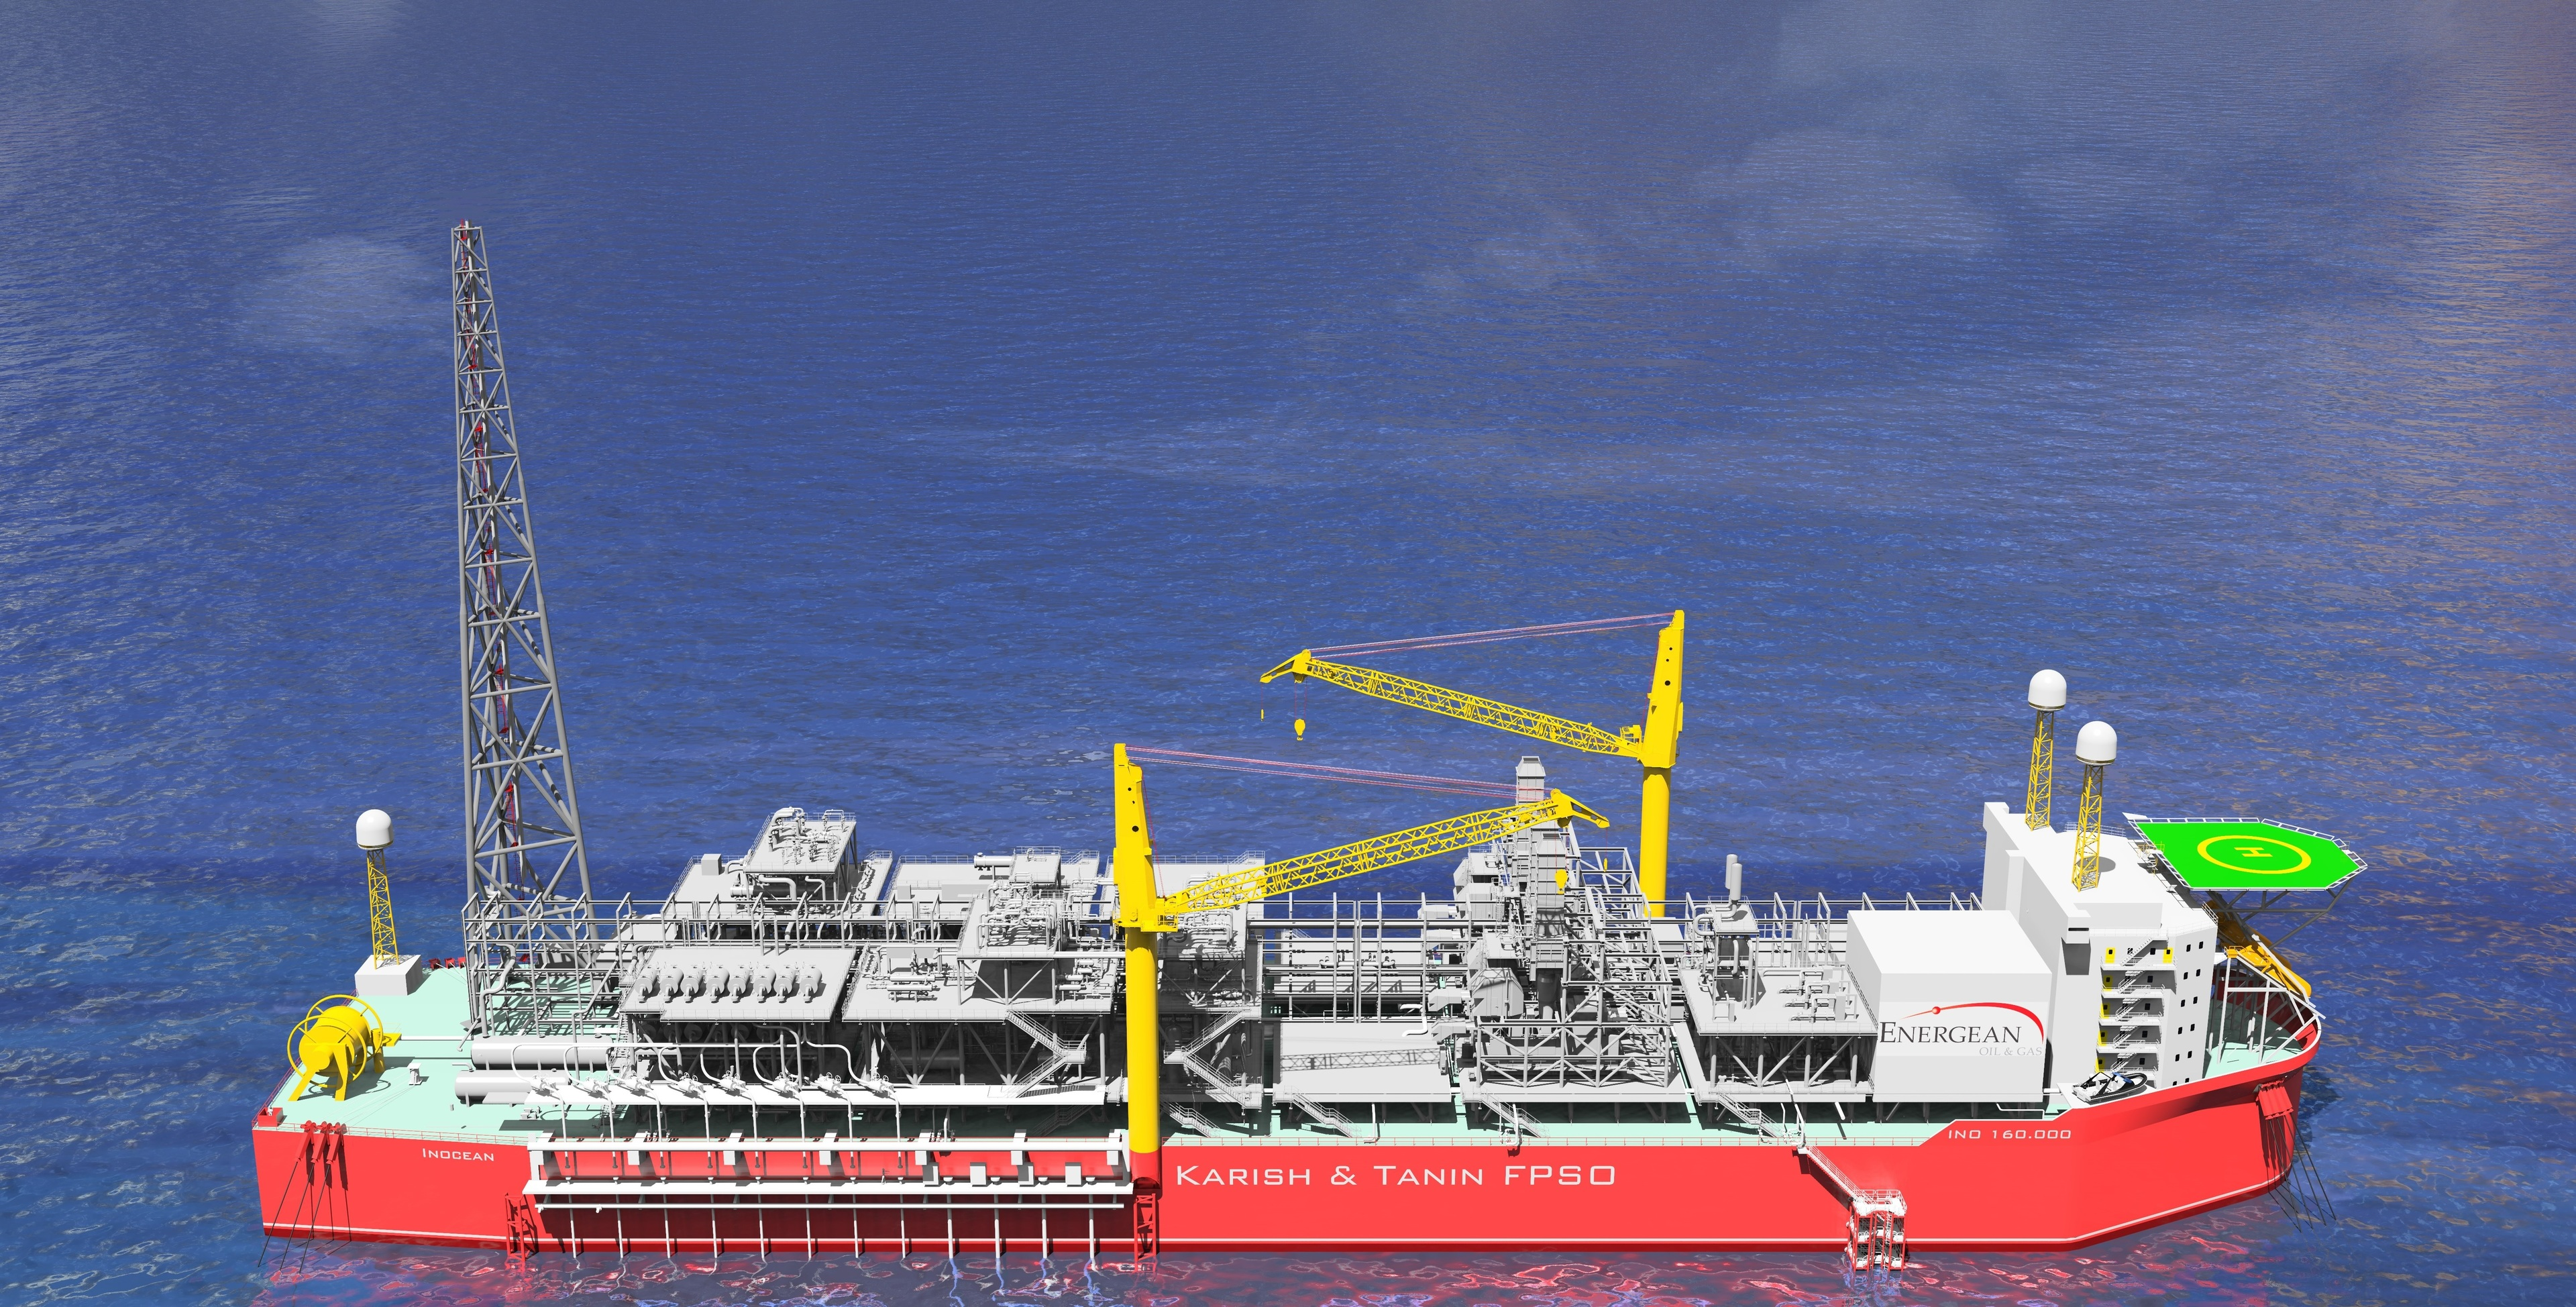 An artist's impression of the Karish and Tanin Floating Production Storage and Offloading unit